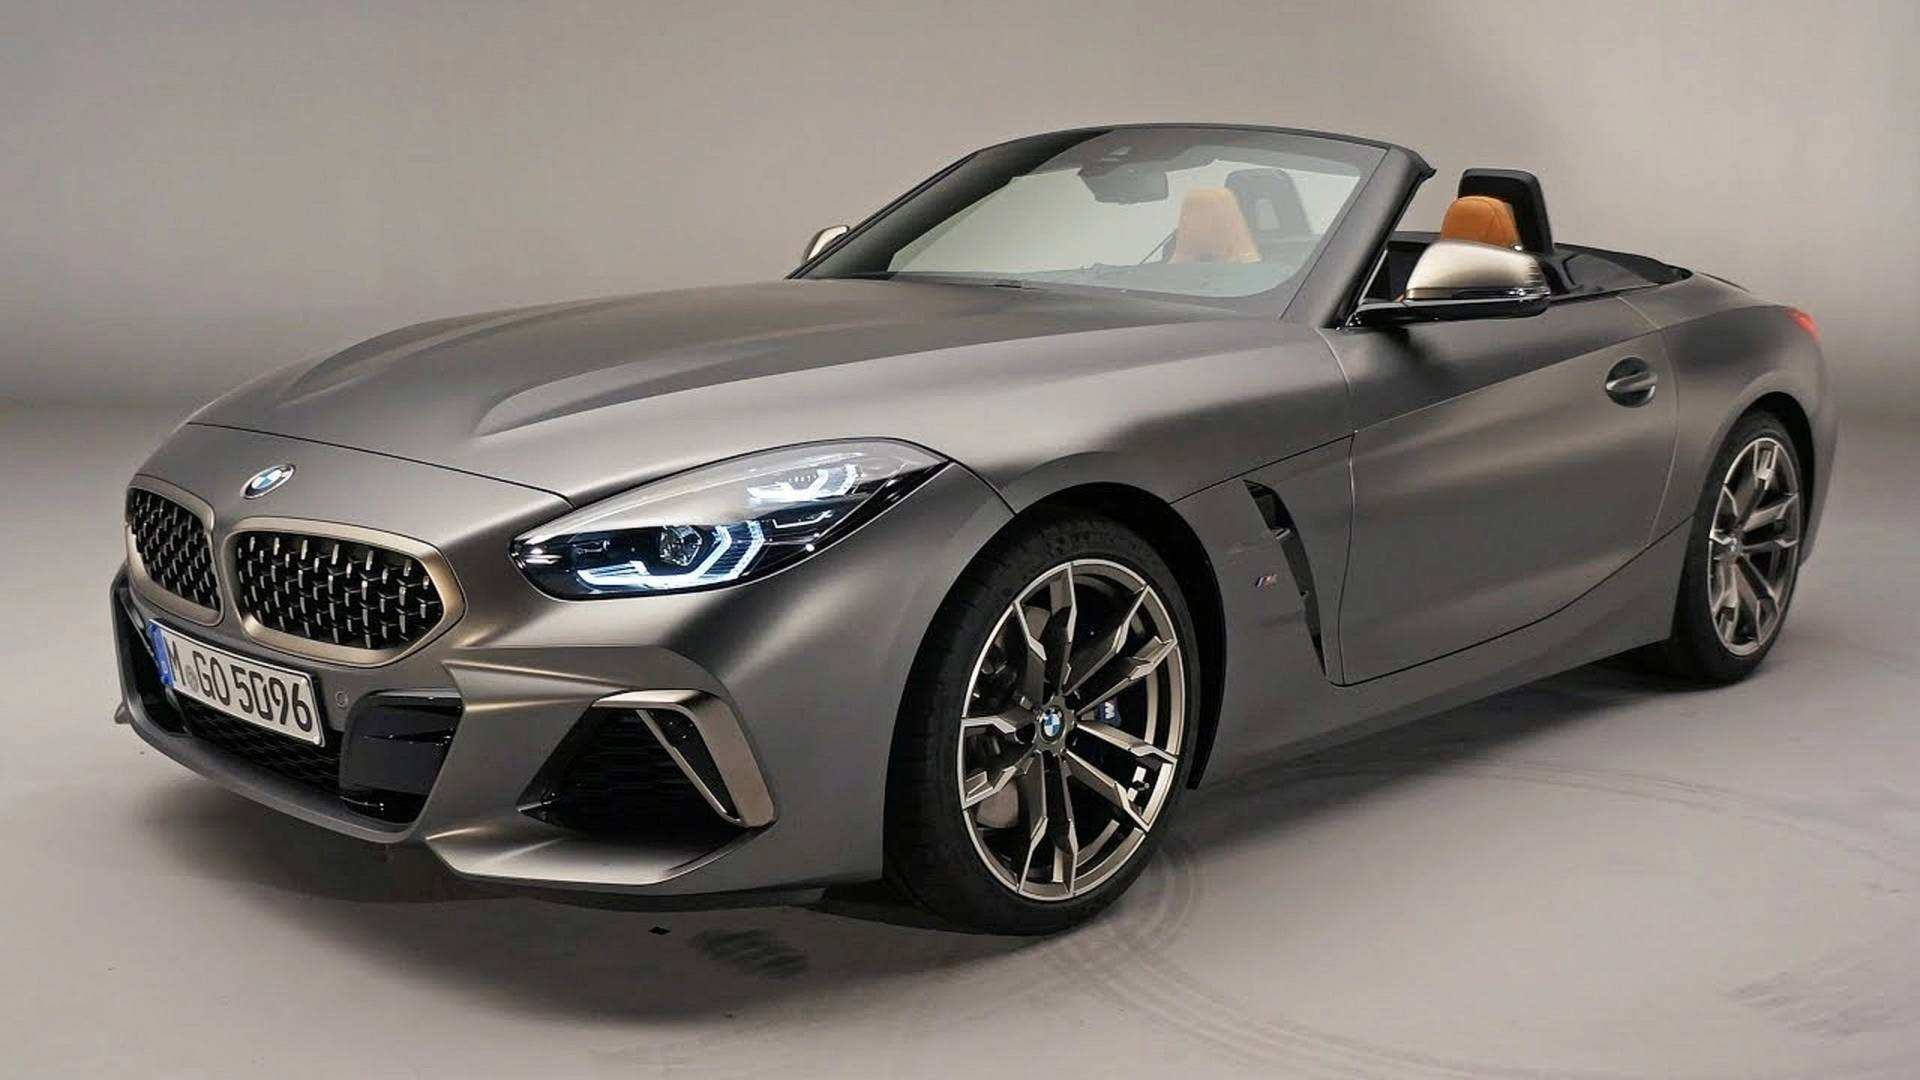 13 Gallery of Bmw 2019 Z4 Price Price And Release Date Style with Bmw 2019 Z4 Price Price And Release Date